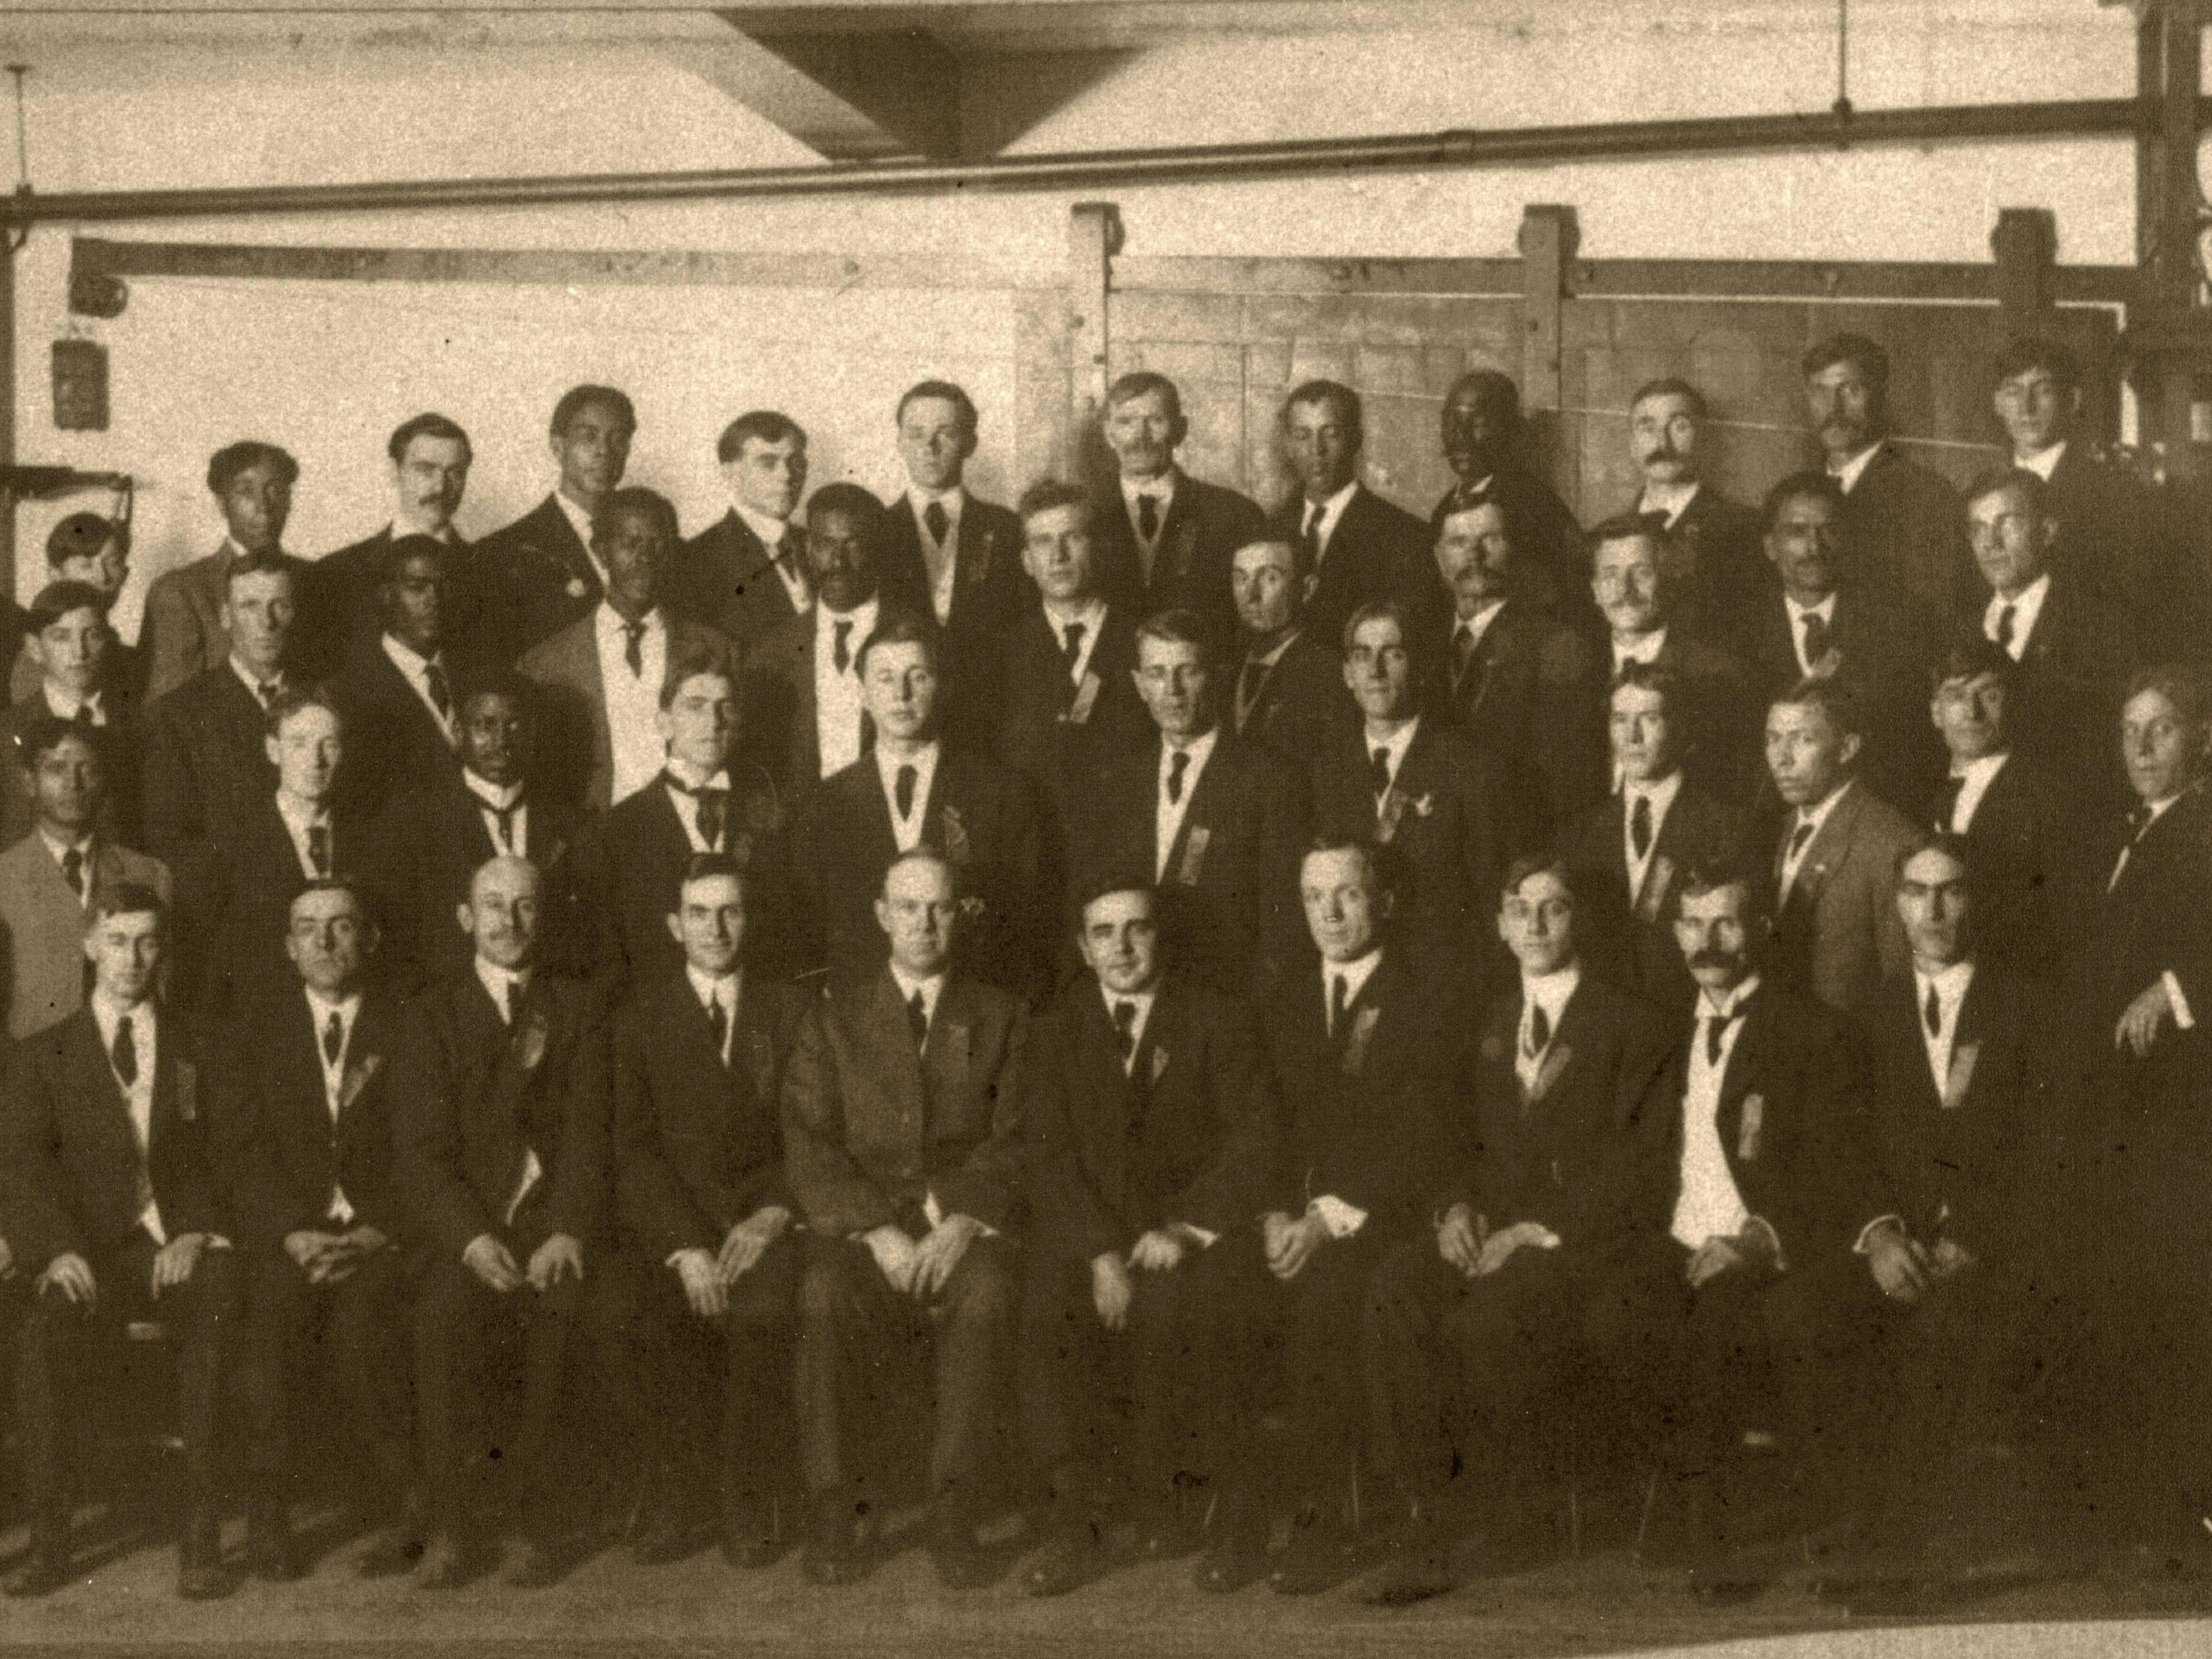 Buxton businessmen in the early 1900s.